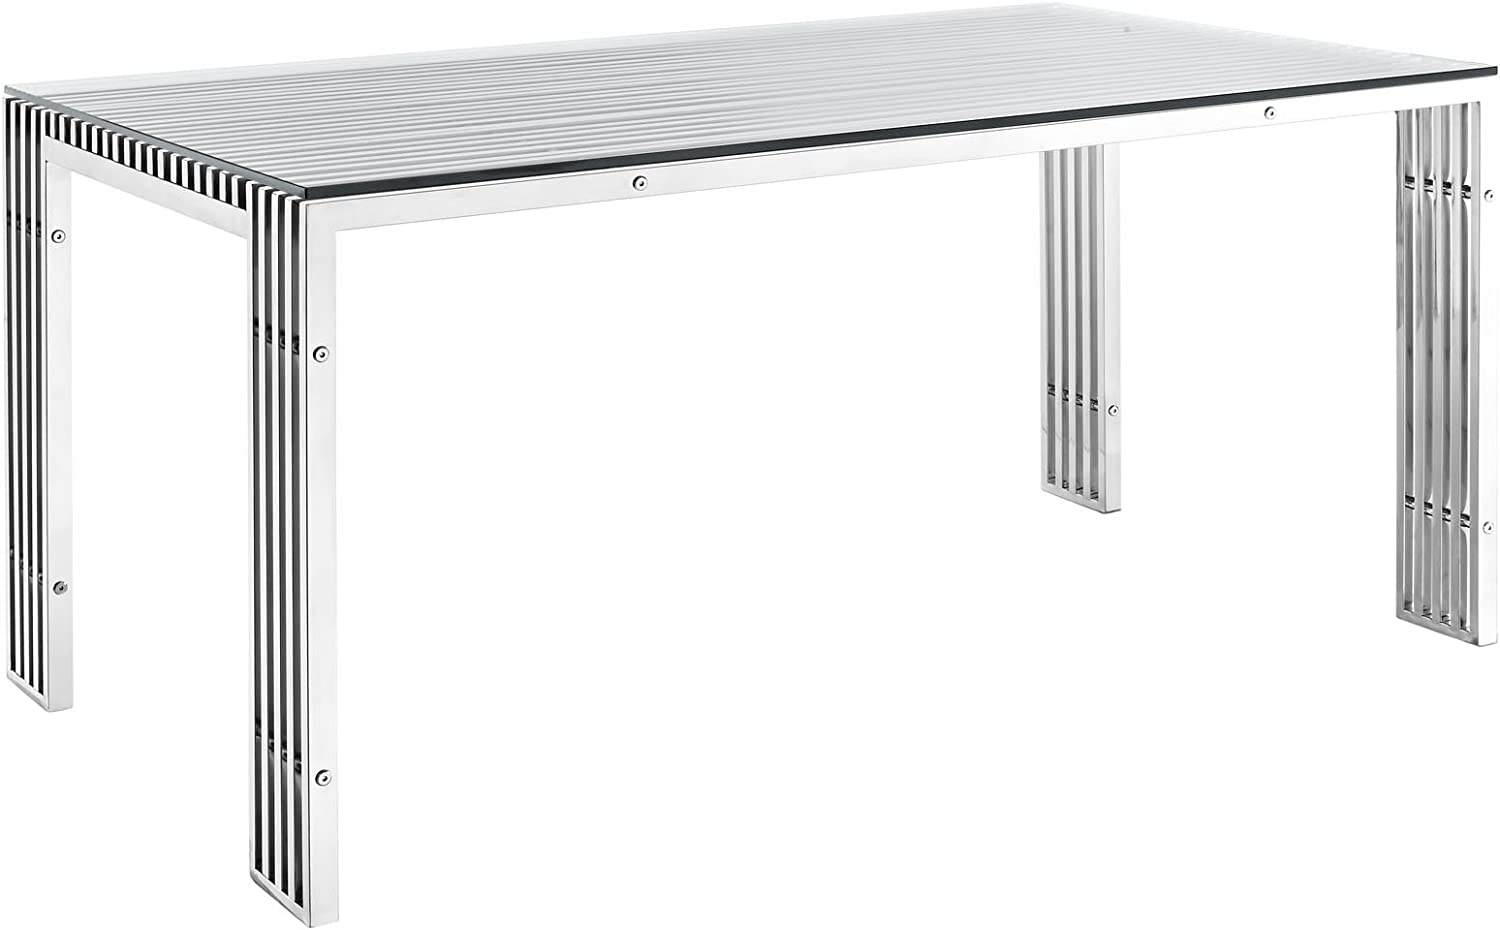 """Modway Gridiron 59"""" Industrial Modern Stainless Steel Kitchen and Dining Table in Silver- Fully Assembled"""